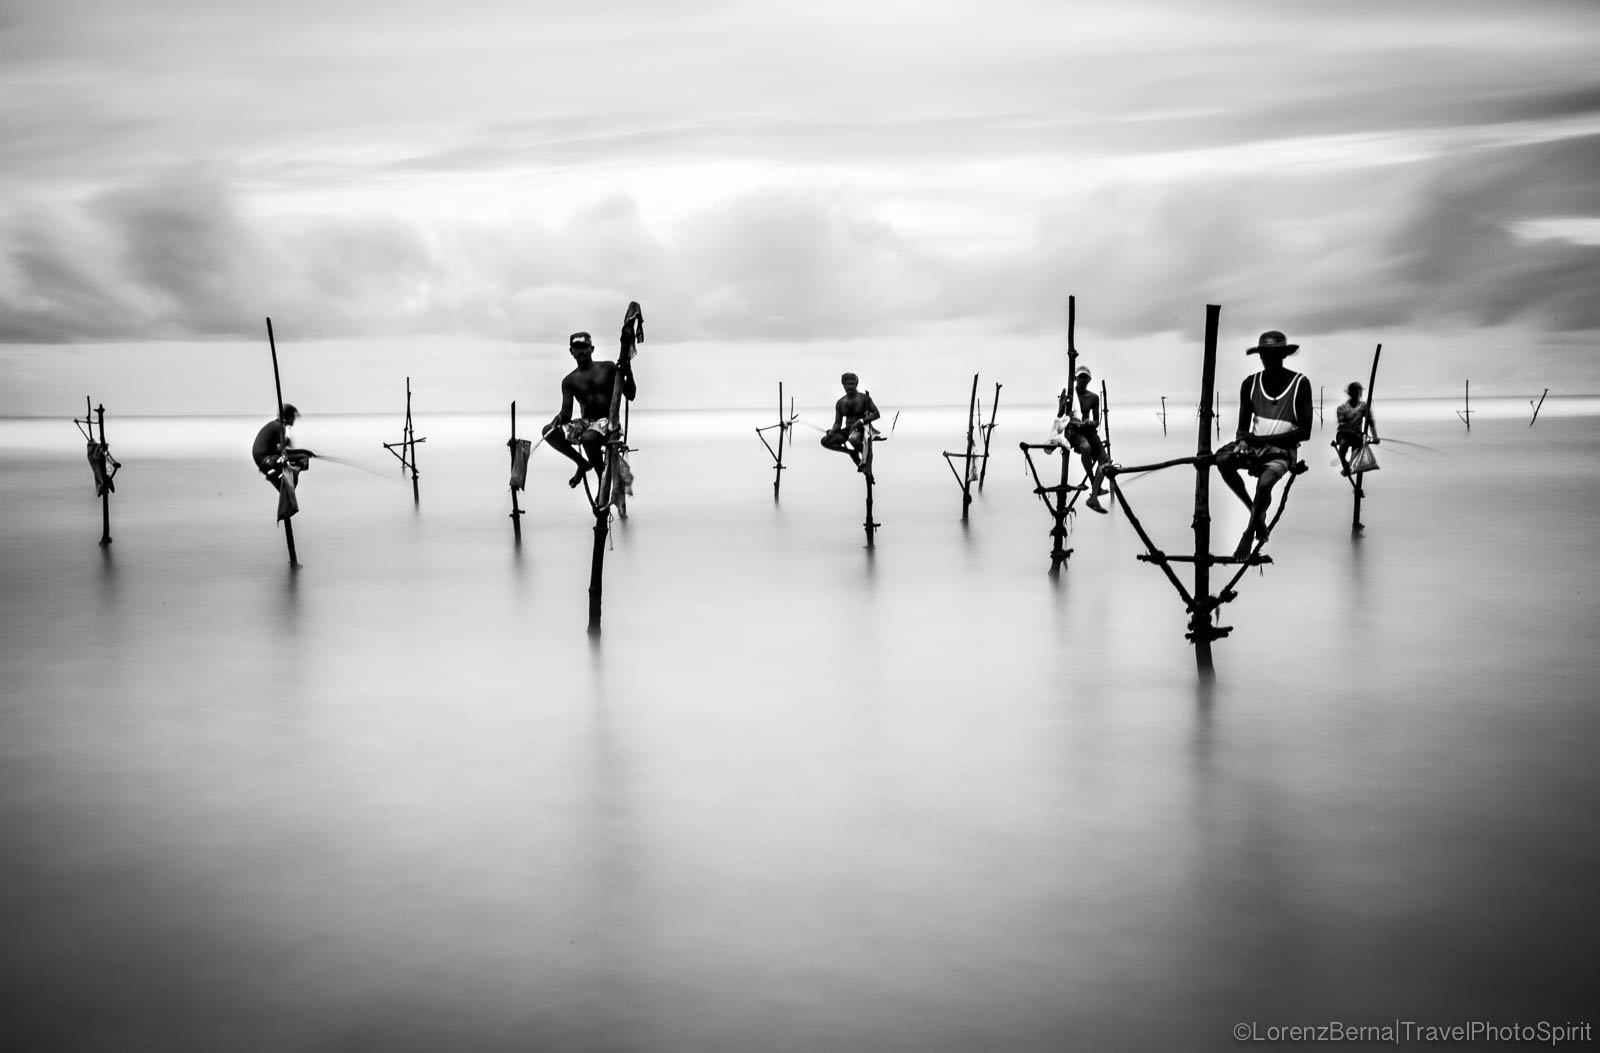 Traditional fishermen on stilt, in Weligama - A photography by Lorenz Berna of Sri Lanka